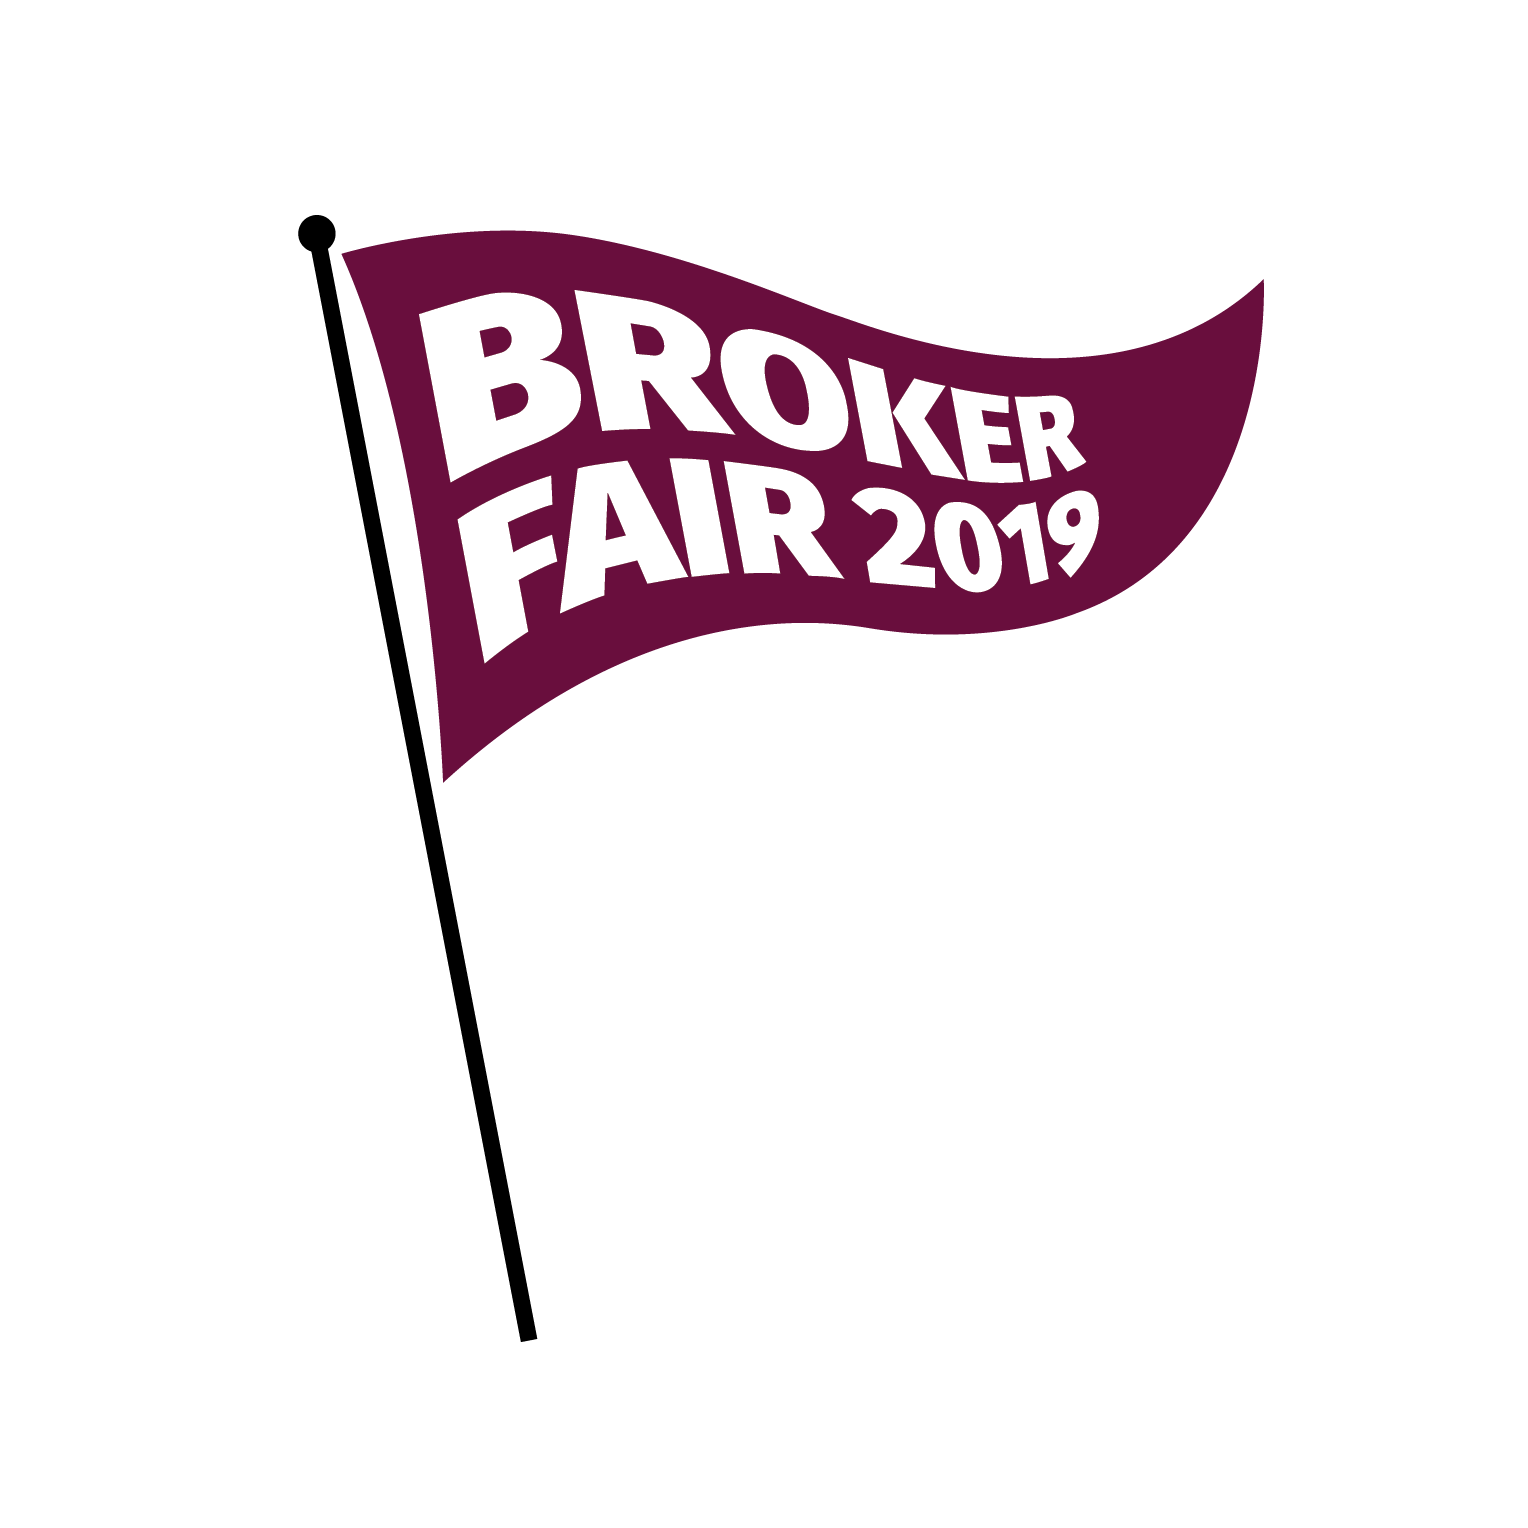 Broker Fair 2019 Flag